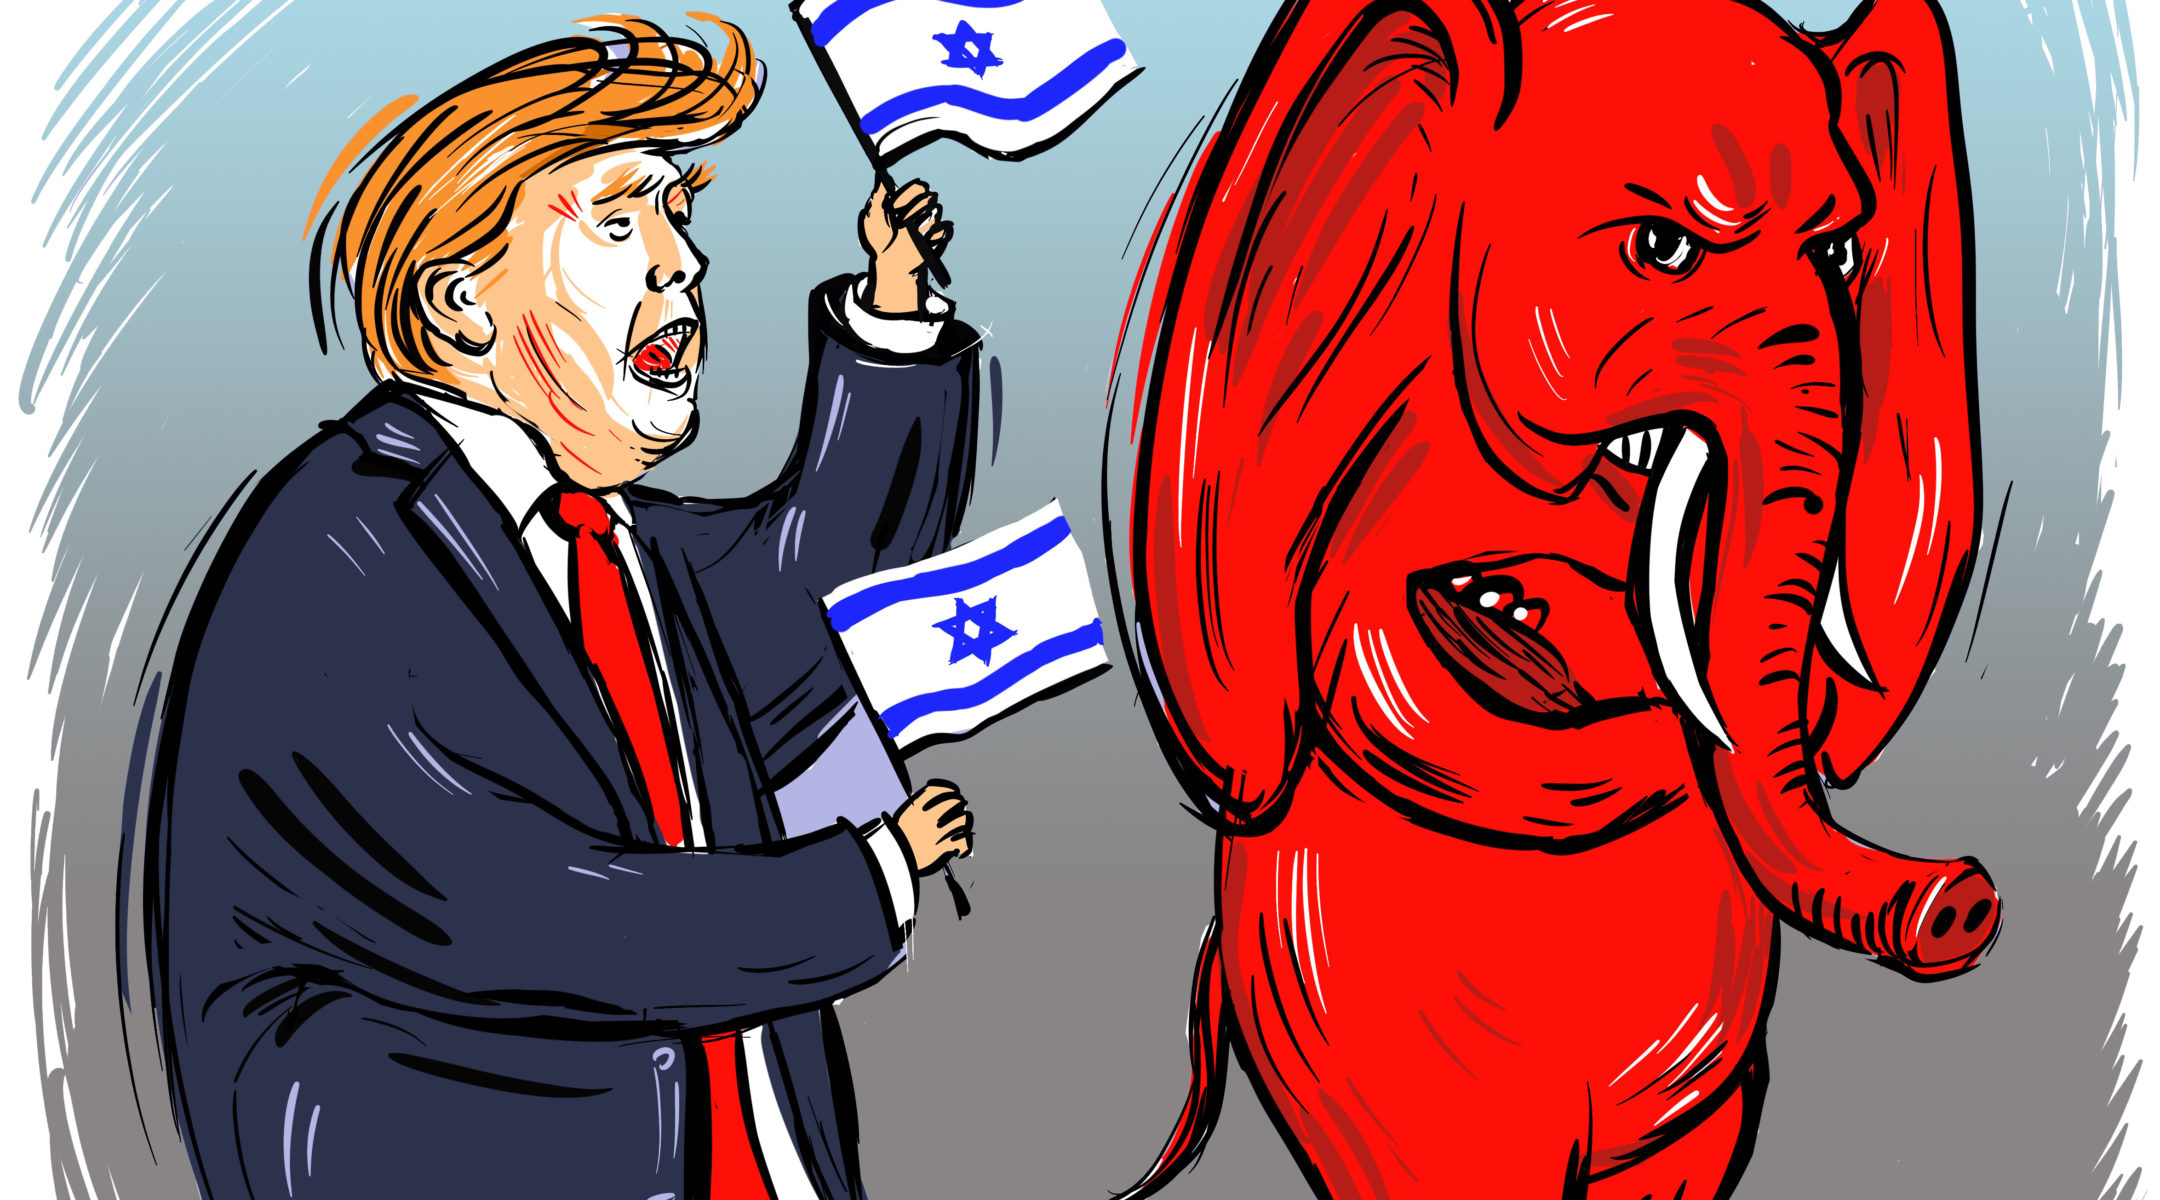 President Donald Trump and many Republicans are divided over Israel. (Illustration/Nikki Casey for JTA)